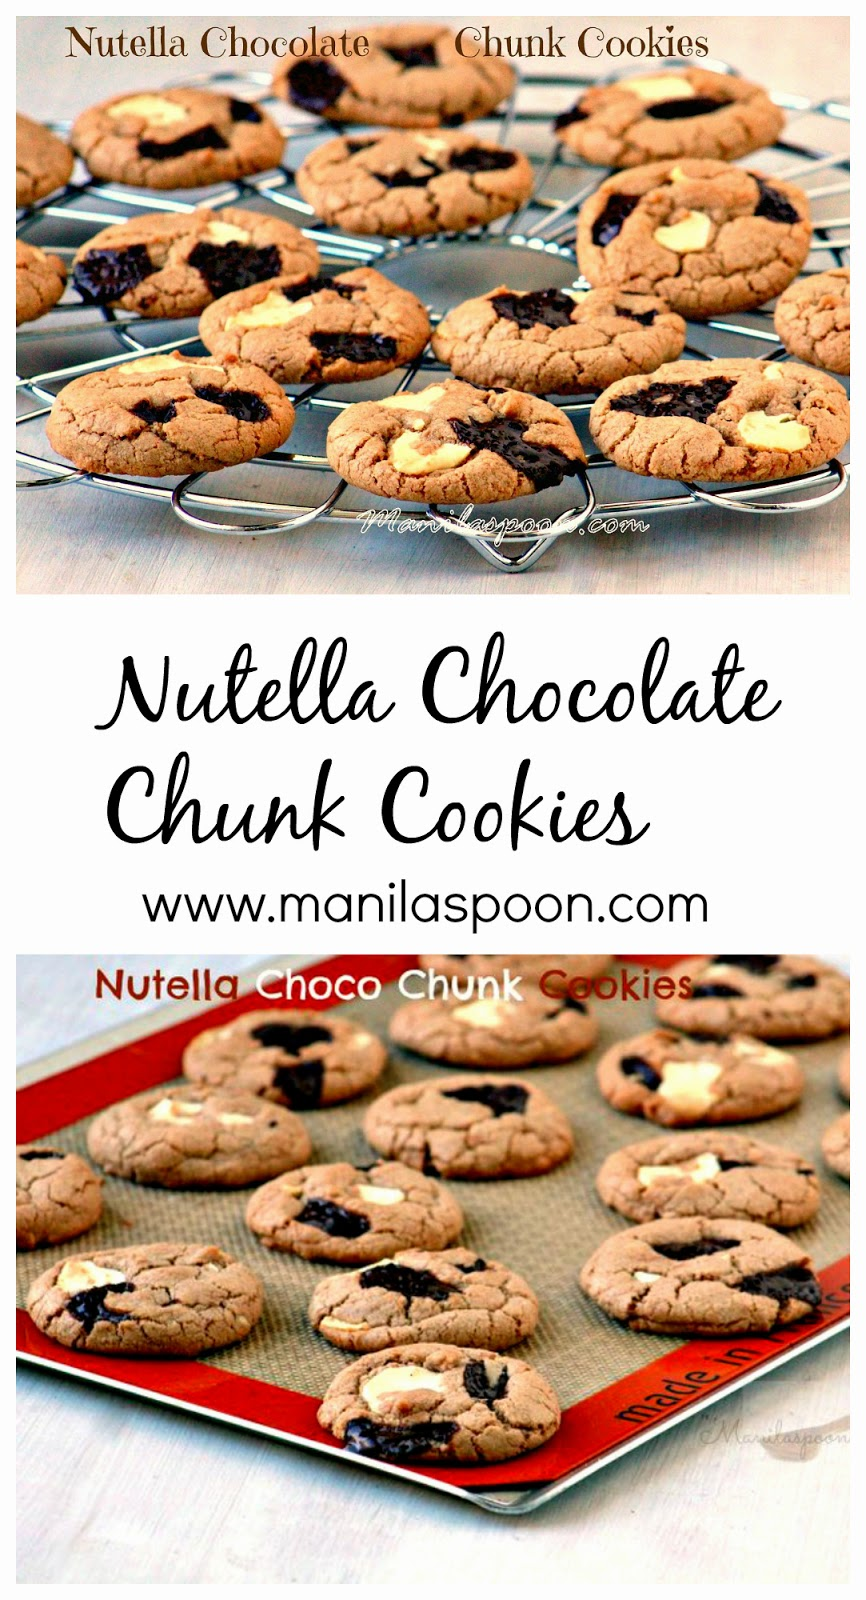 Love to eat these Nutella Choco Chunk Cookies warm when the gooey choco bits melt in your mouth. Enjoy with some ice cream for the ultimate treat! #nutella #cookies